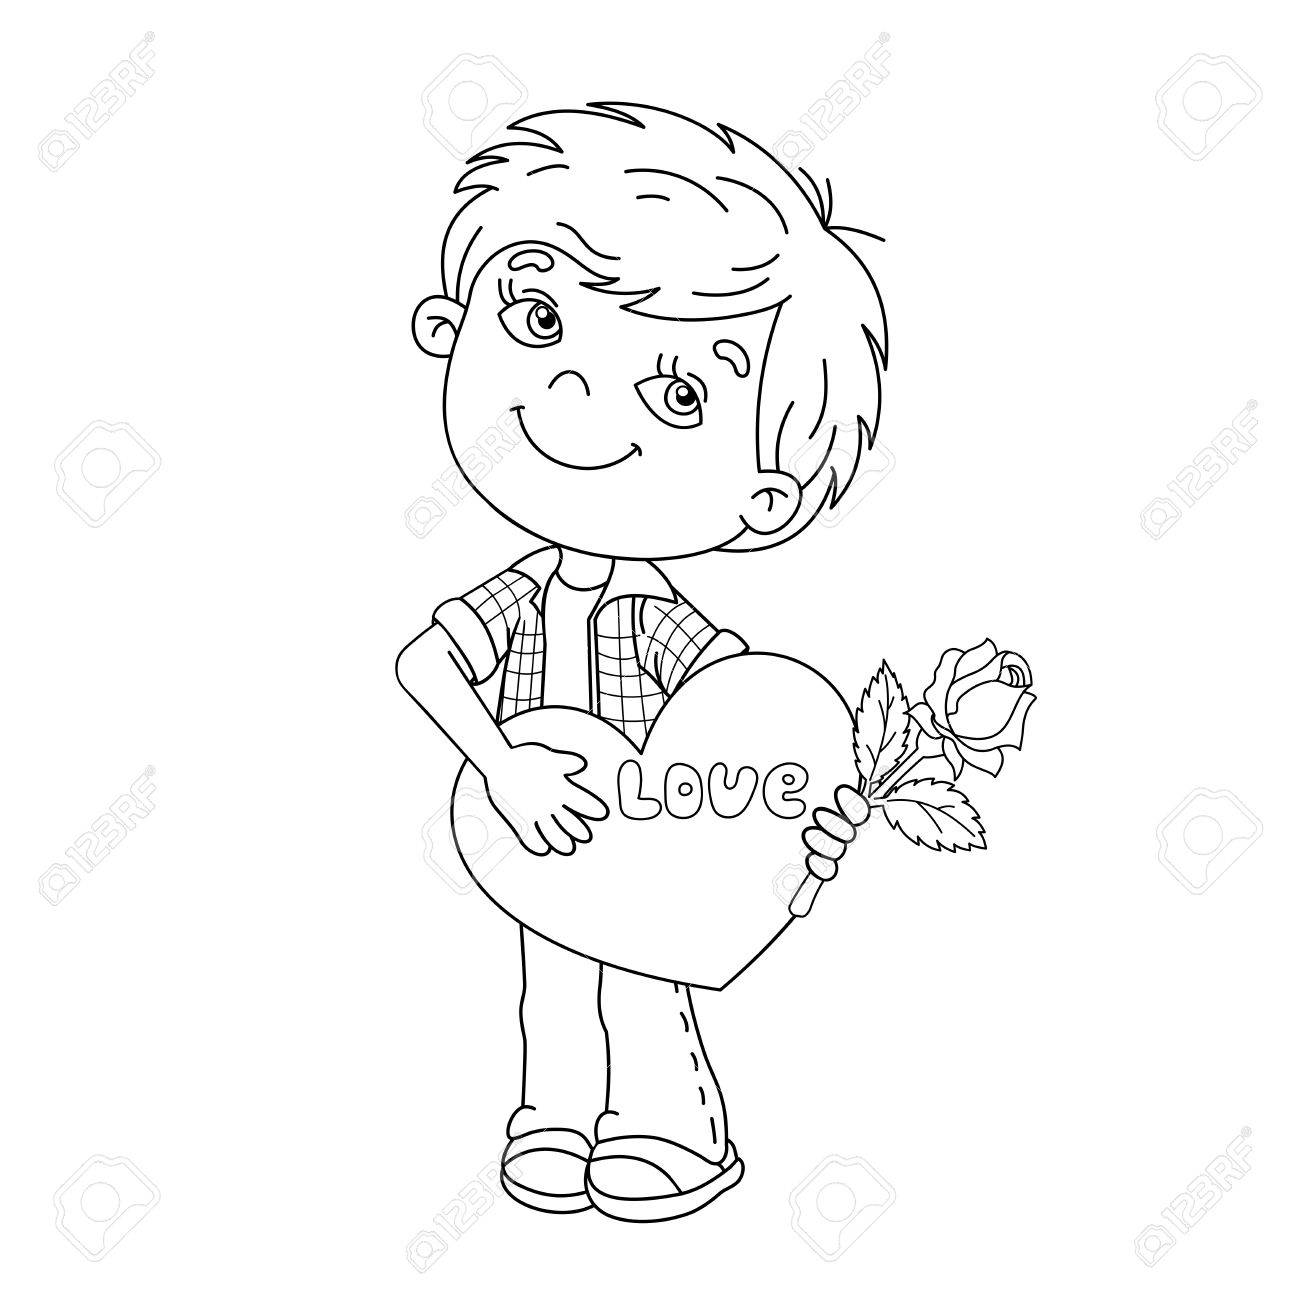 Coloring Page Outline Of Cartoon Boy With Rose In Hand With Heart ...